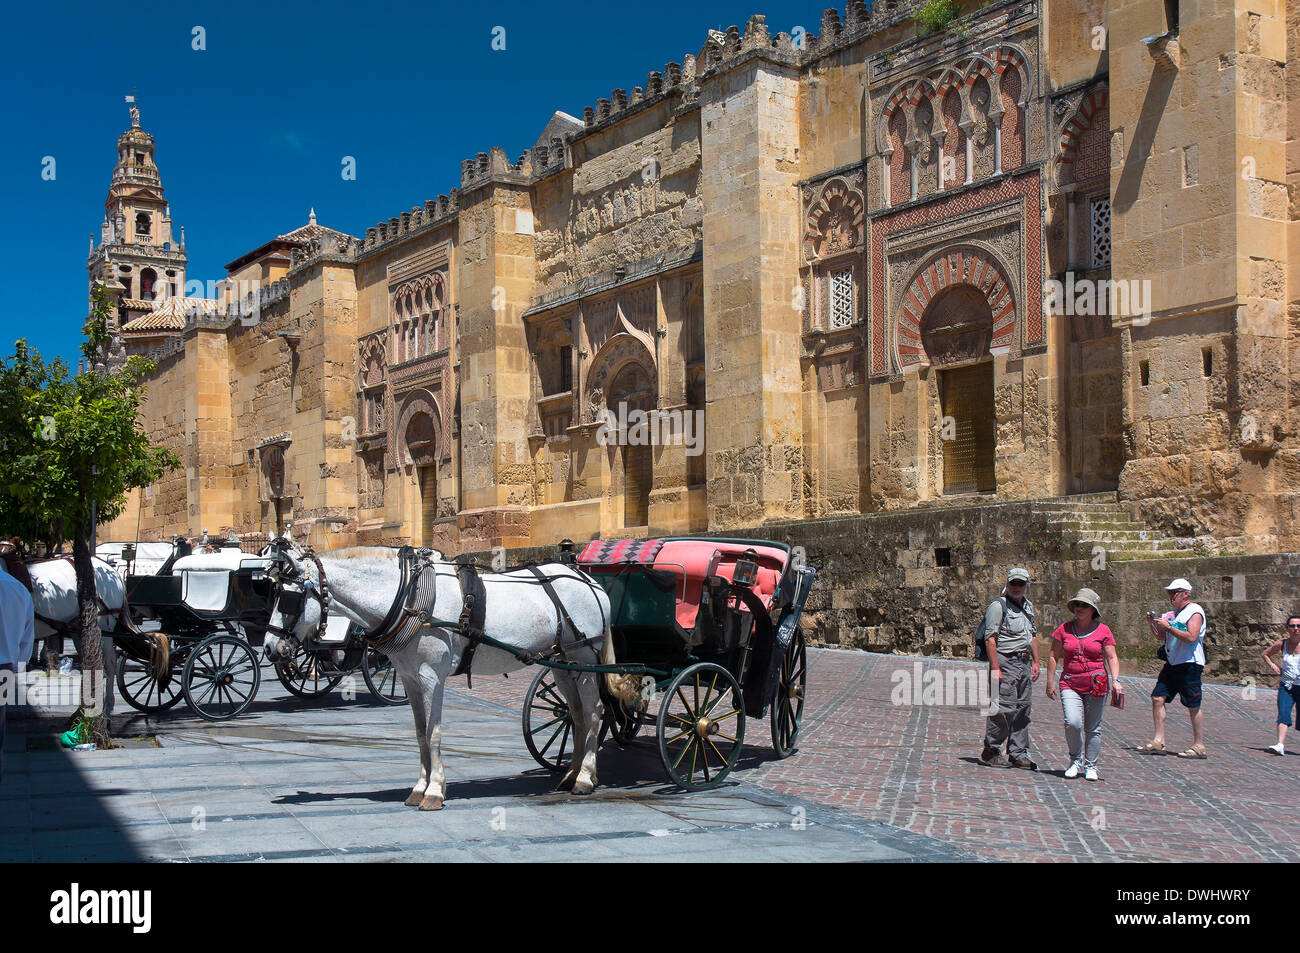 Arab mosque (Cathedral) and horse carriages, Cordoba, Region of Andalusia, Spain; Europe - Stock Image